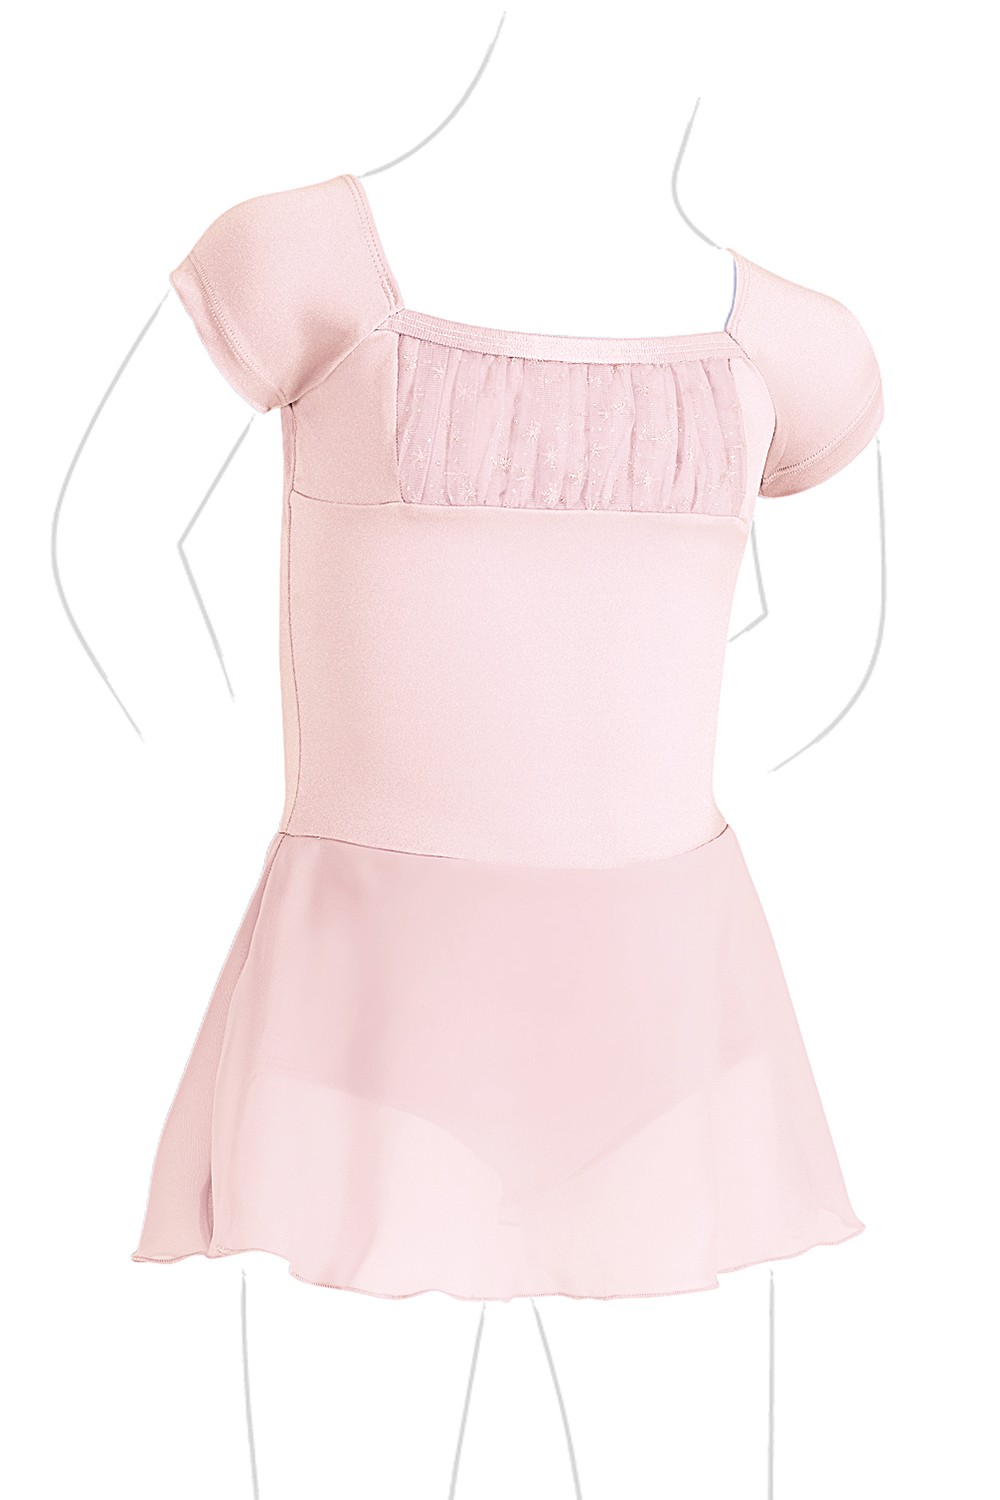 Cap Sleeve Skirted Leo Children's Dance Leotards